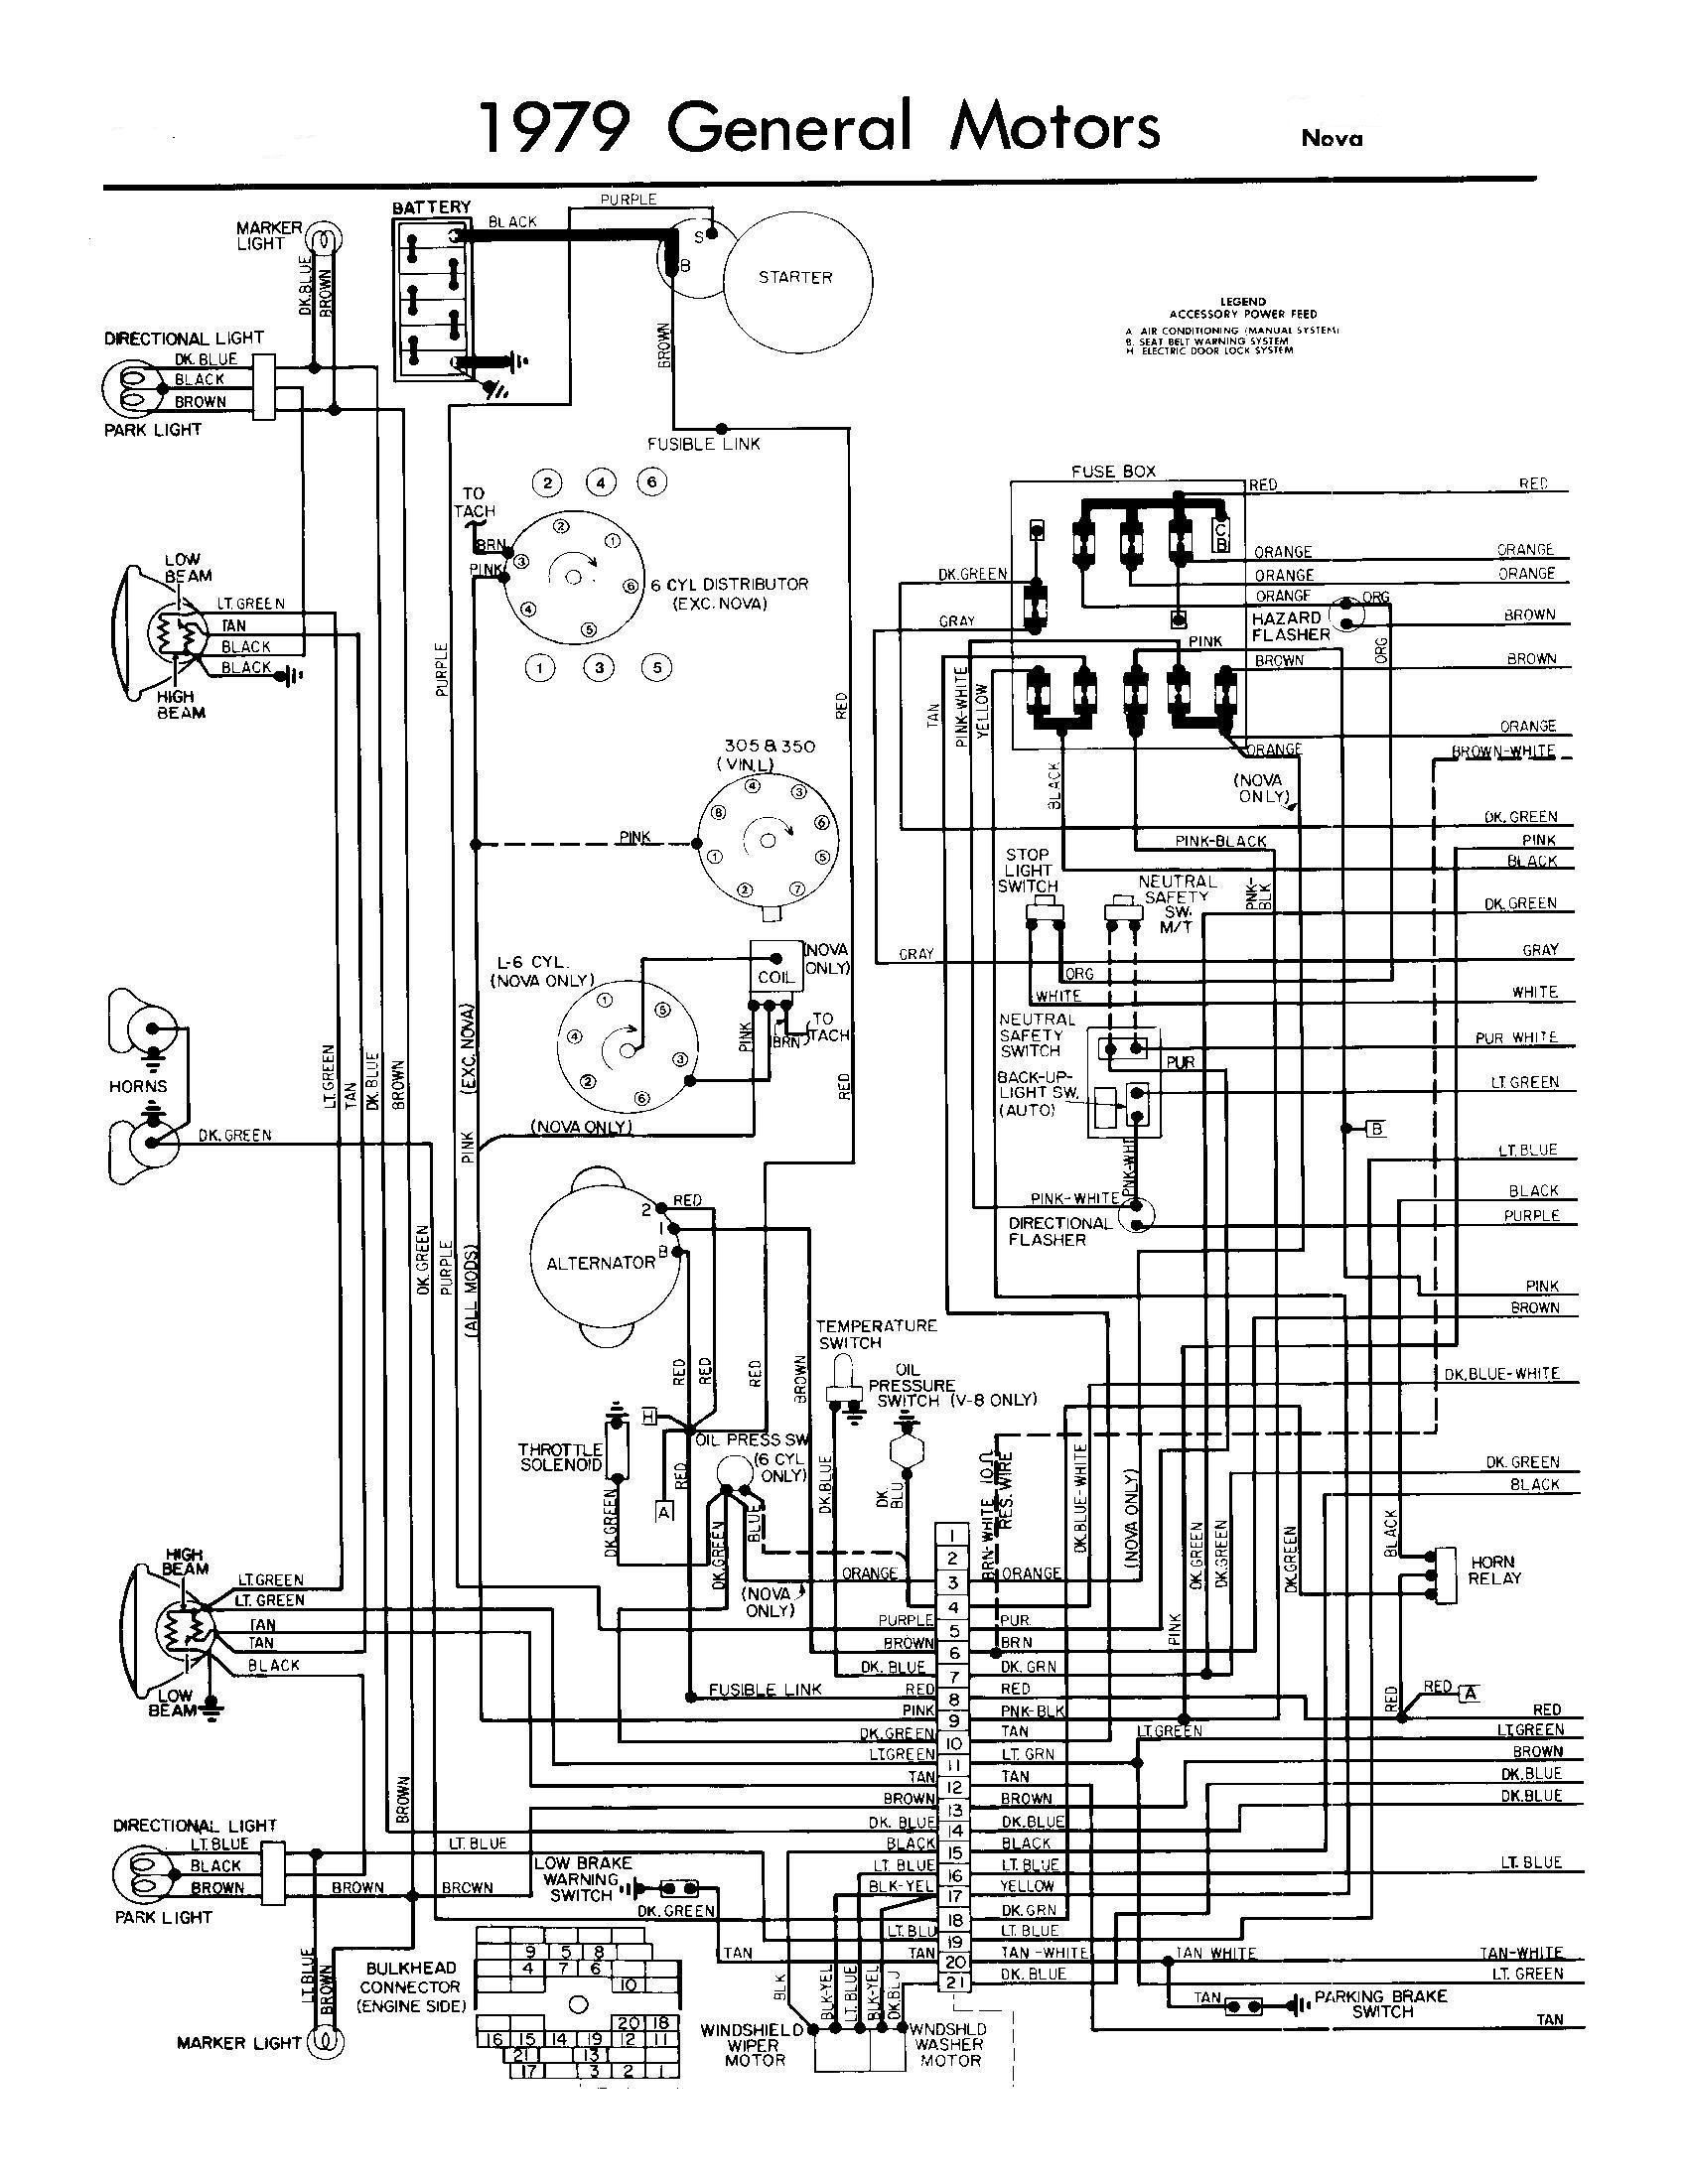 1970 Chevrolet C10 Wiring Diagram Of The Fuse Box